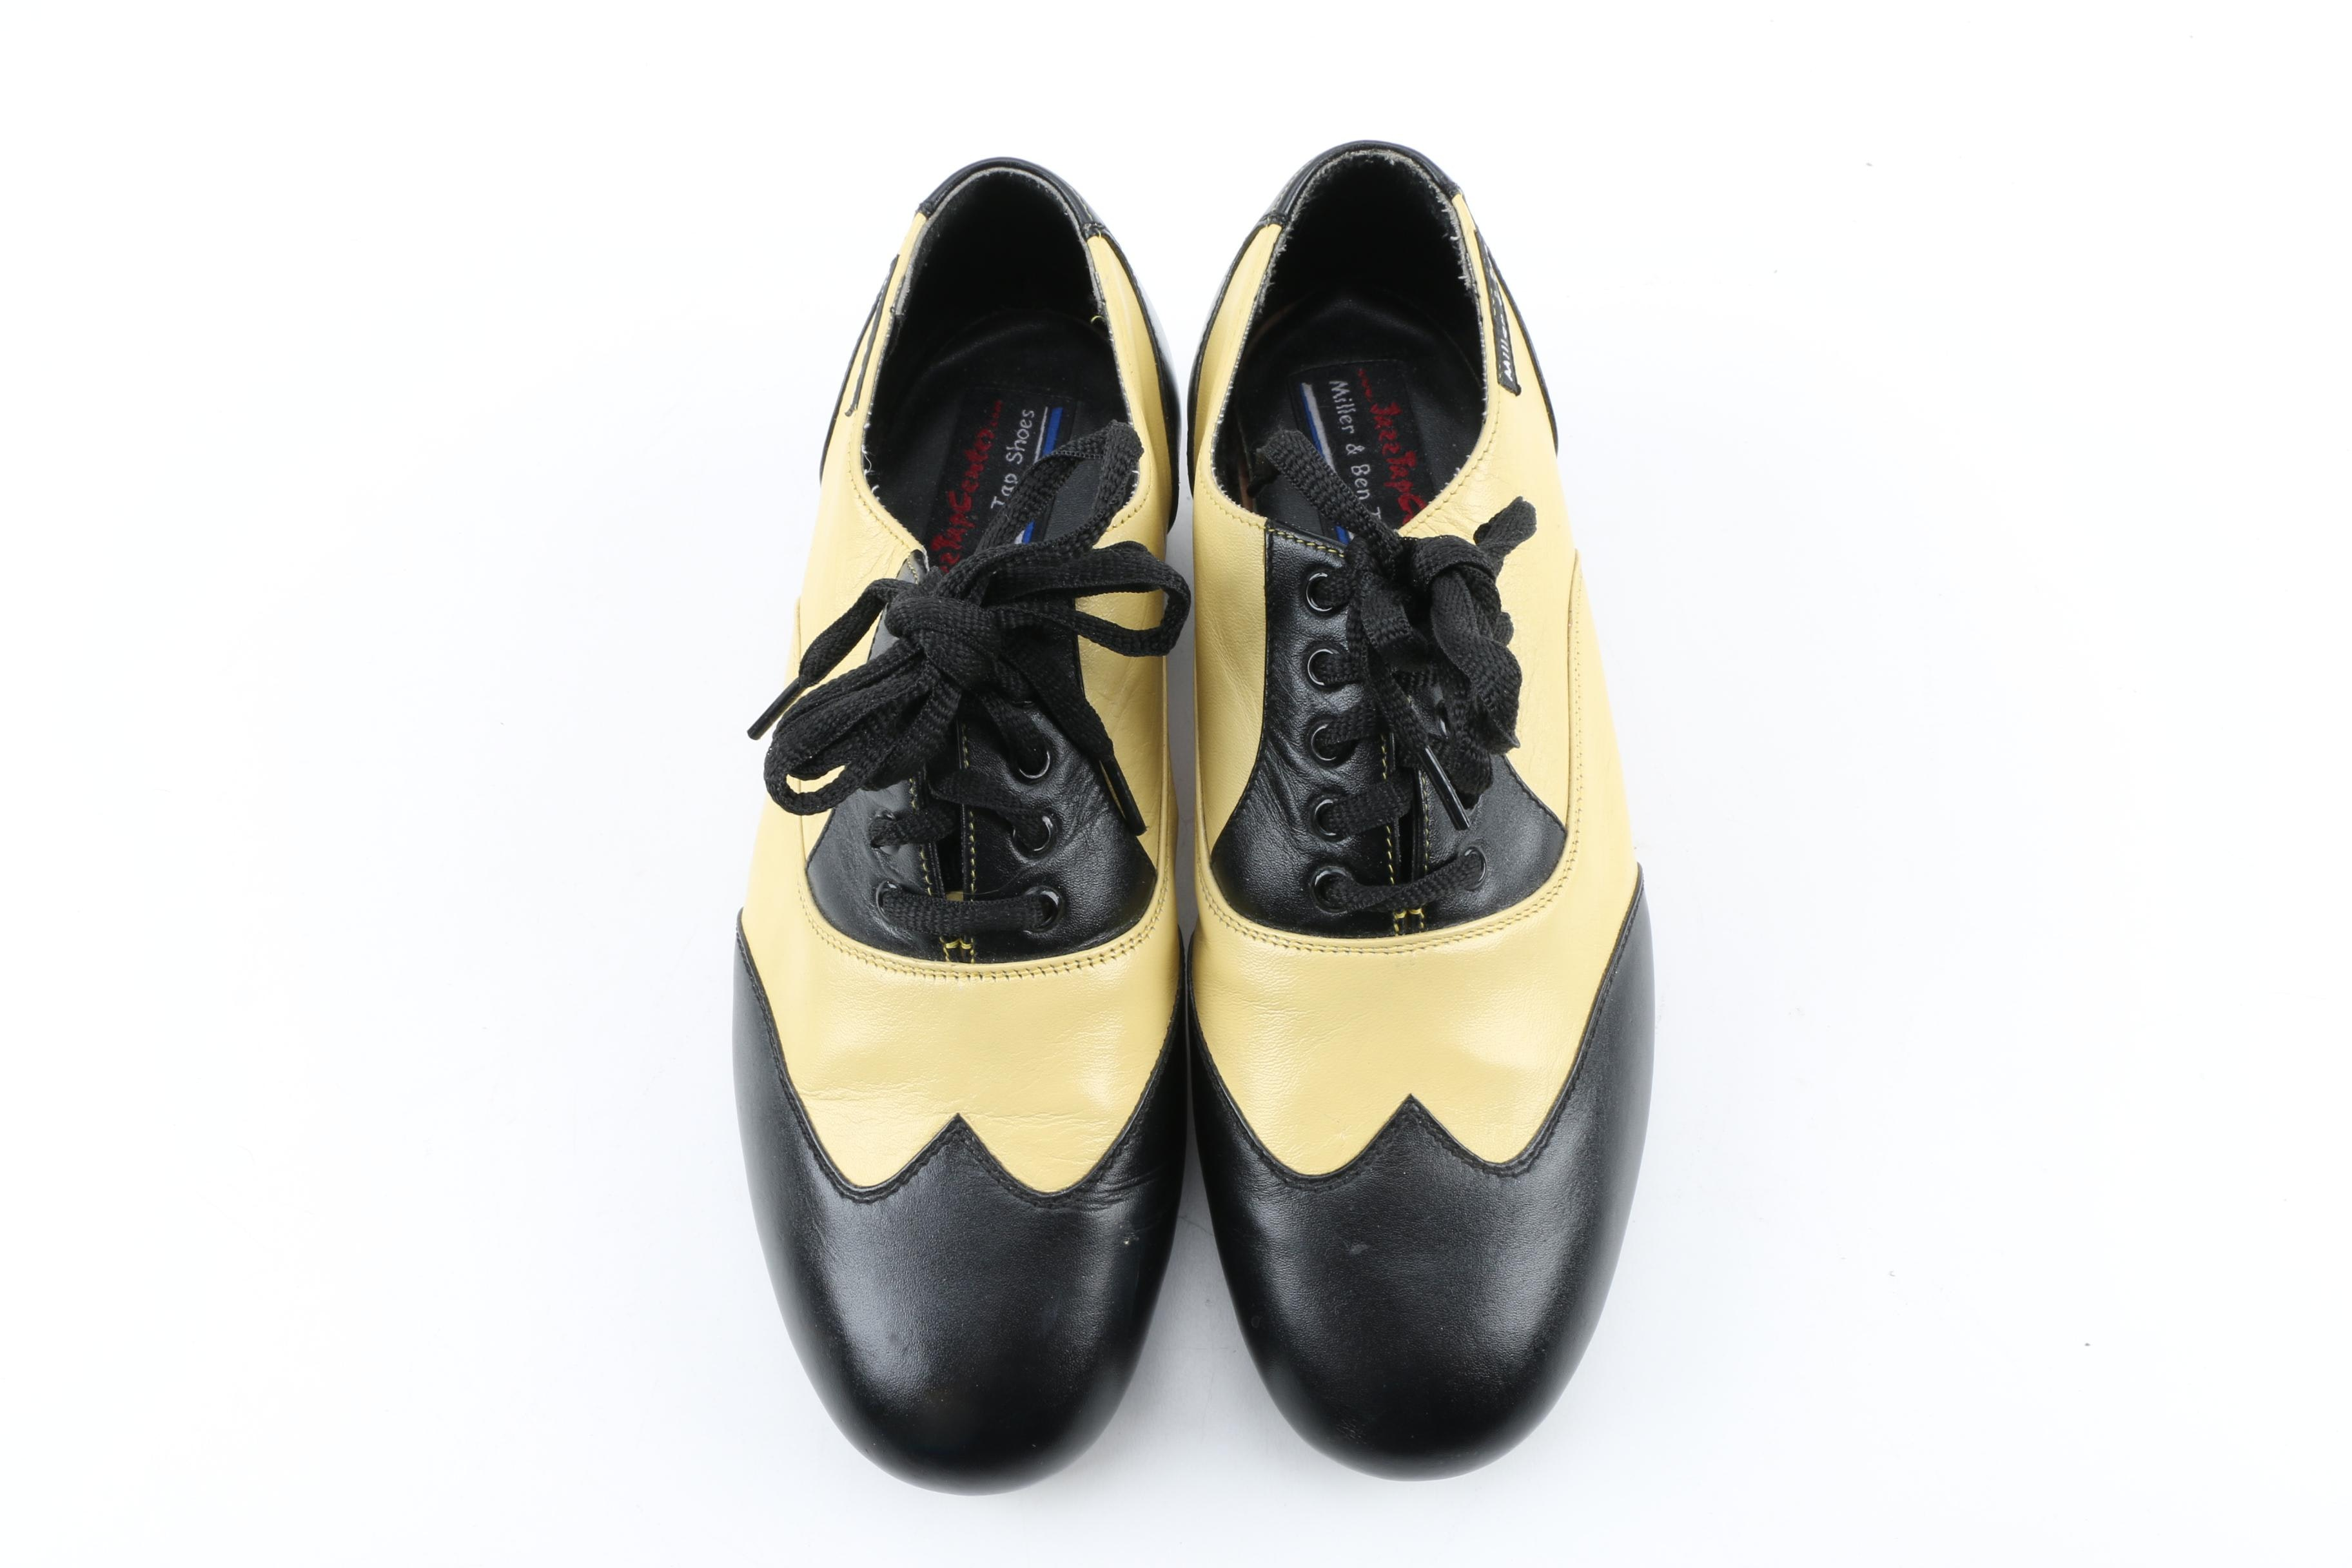 Miller & Ben Triple Threat Tap Shoes in Black and Ivory Leather